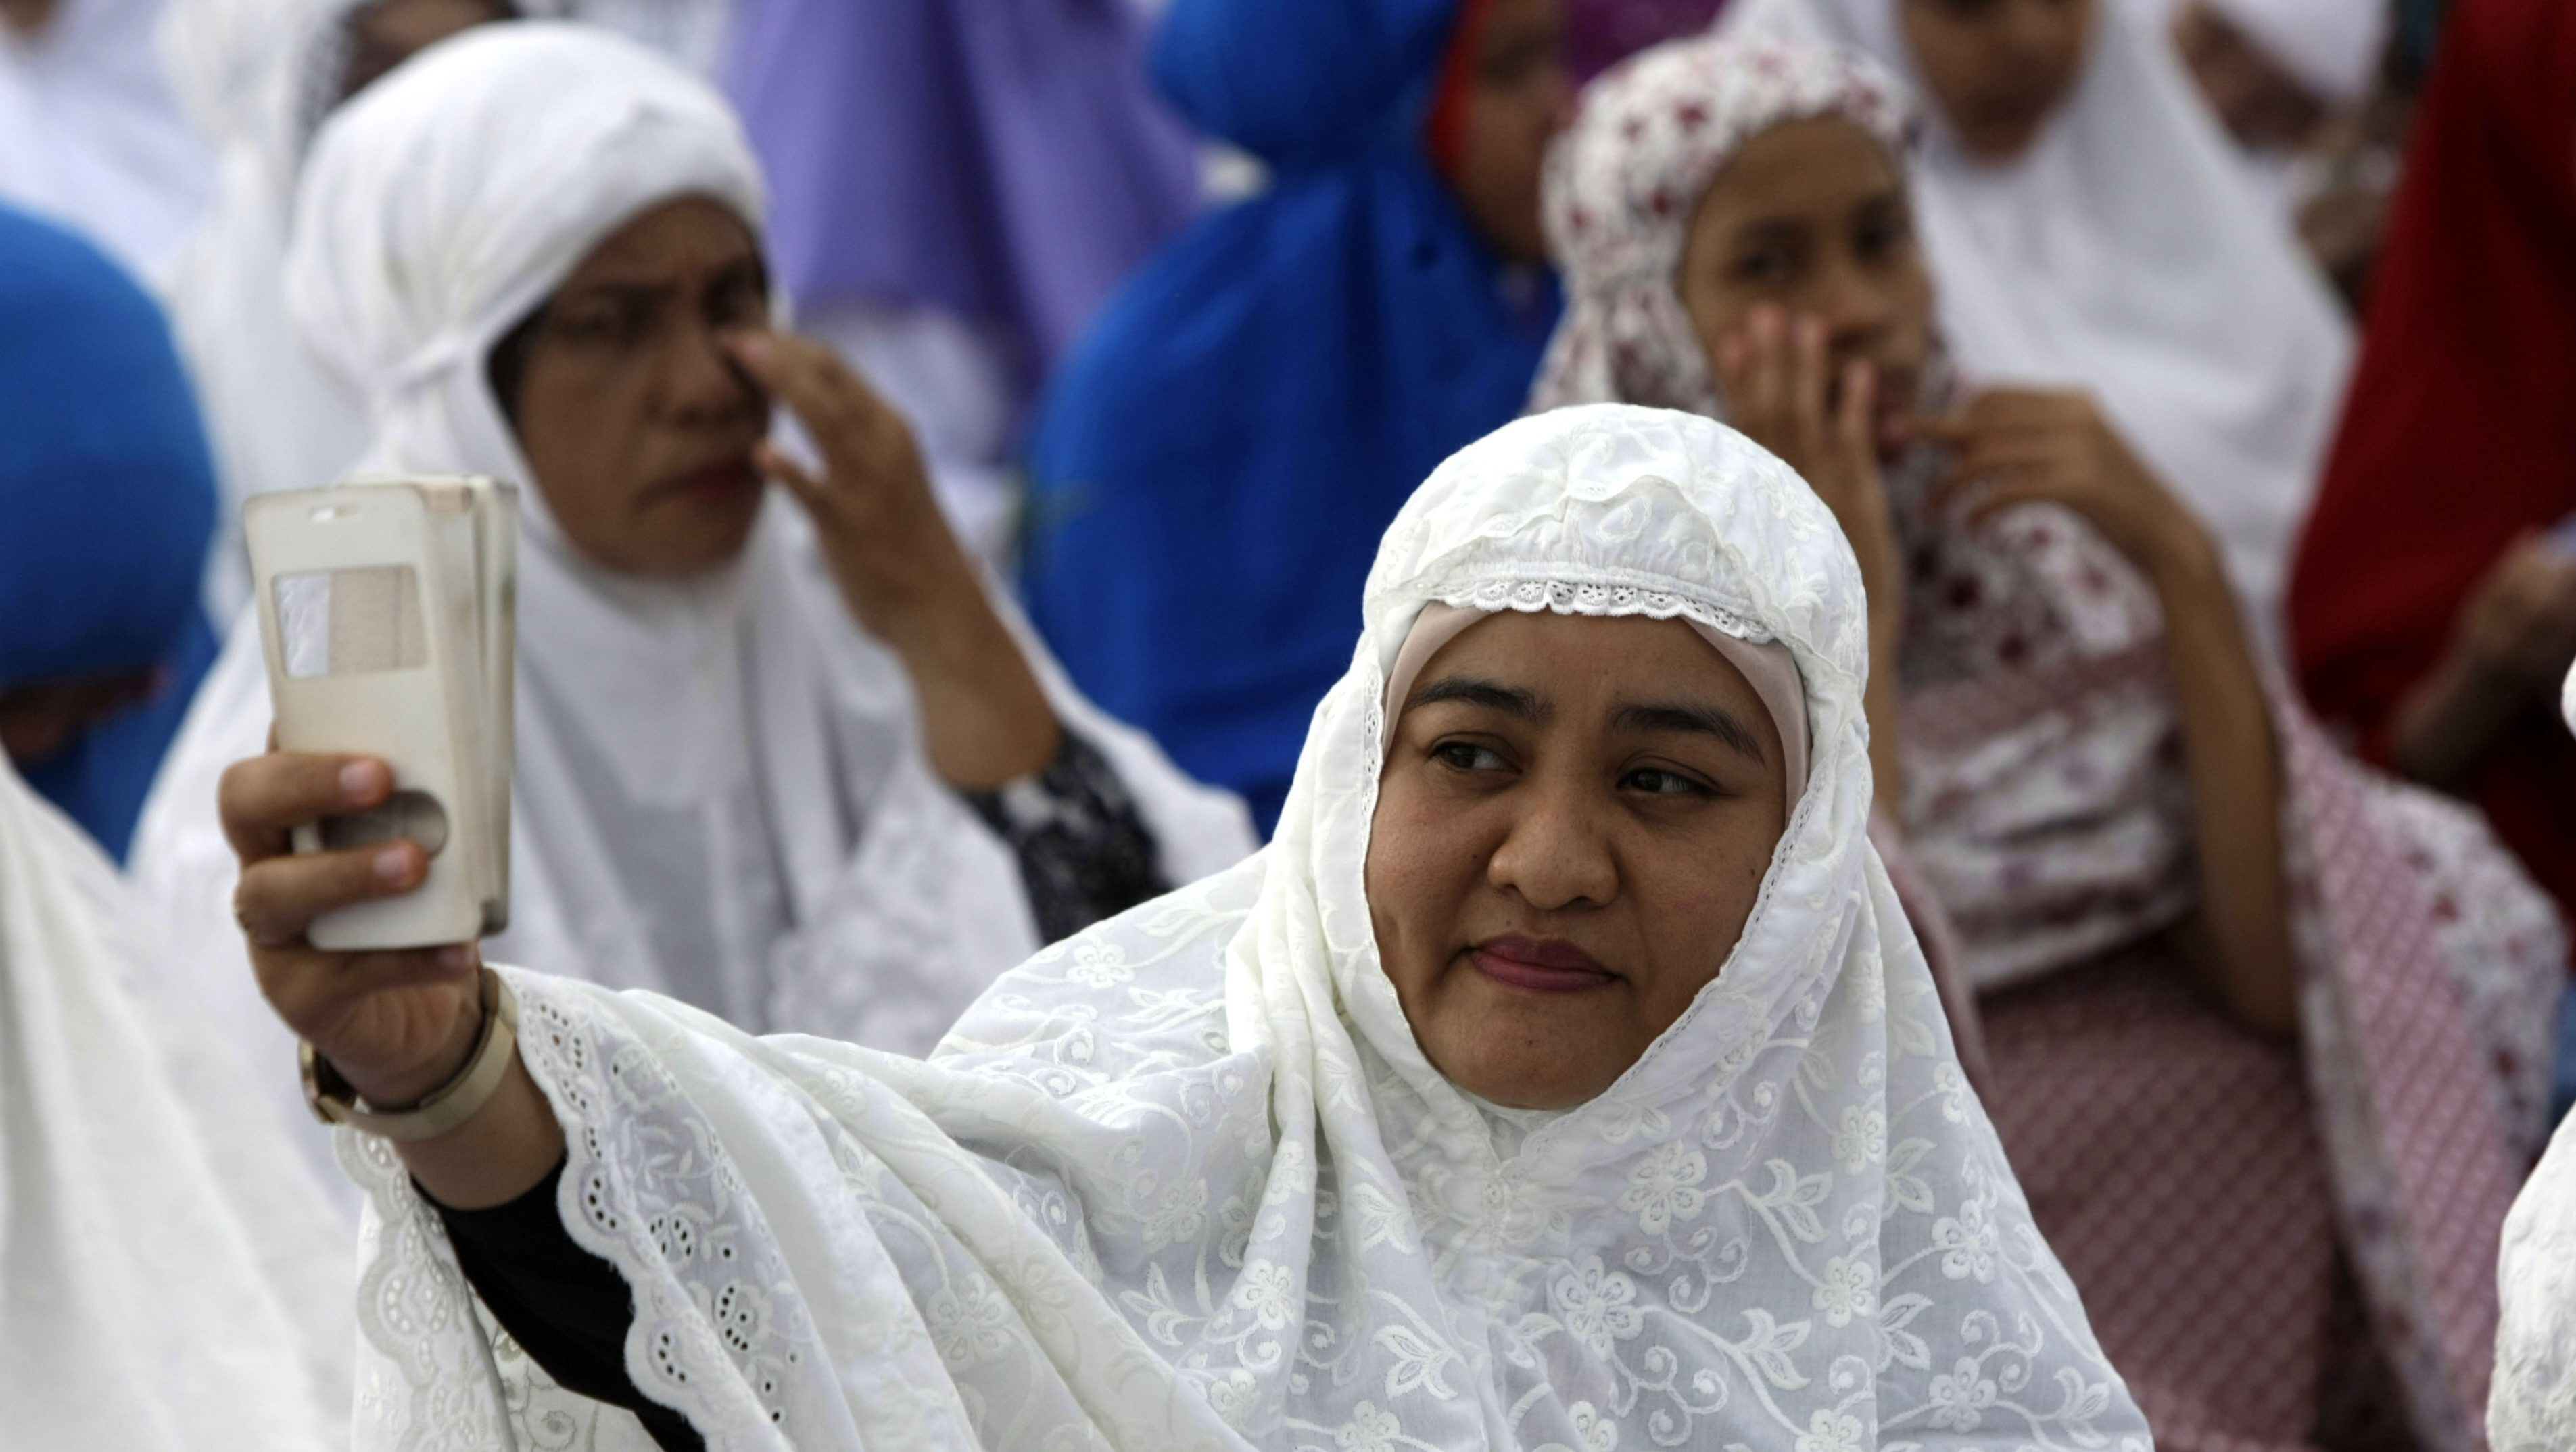 A picture made available 26 September 2016 shows a Muslim woman taking a selfie during a mass prayer session, in Banda Aceh, Indonesia, 12 September 2016. South-east Asian nations are cashing in on increasing earnings in the tourism sector from Islamic travelers, and 'Halal Tourism' is reported to be among the fastest growing travel groups. Among other things on offer to Muslim travelers is halal food permitted by Islam, available in specially dedicated restaurants and shops, with no alcohol, and accommodation enabling suitable places for prayer, male and female segregation such as women-only swimming pools and private beaches, conservative uniforms for hotel serving staff, and copies of the Koran in rooms. United Nations World Tourism Day celebrations will be observed on 27 September 2016.